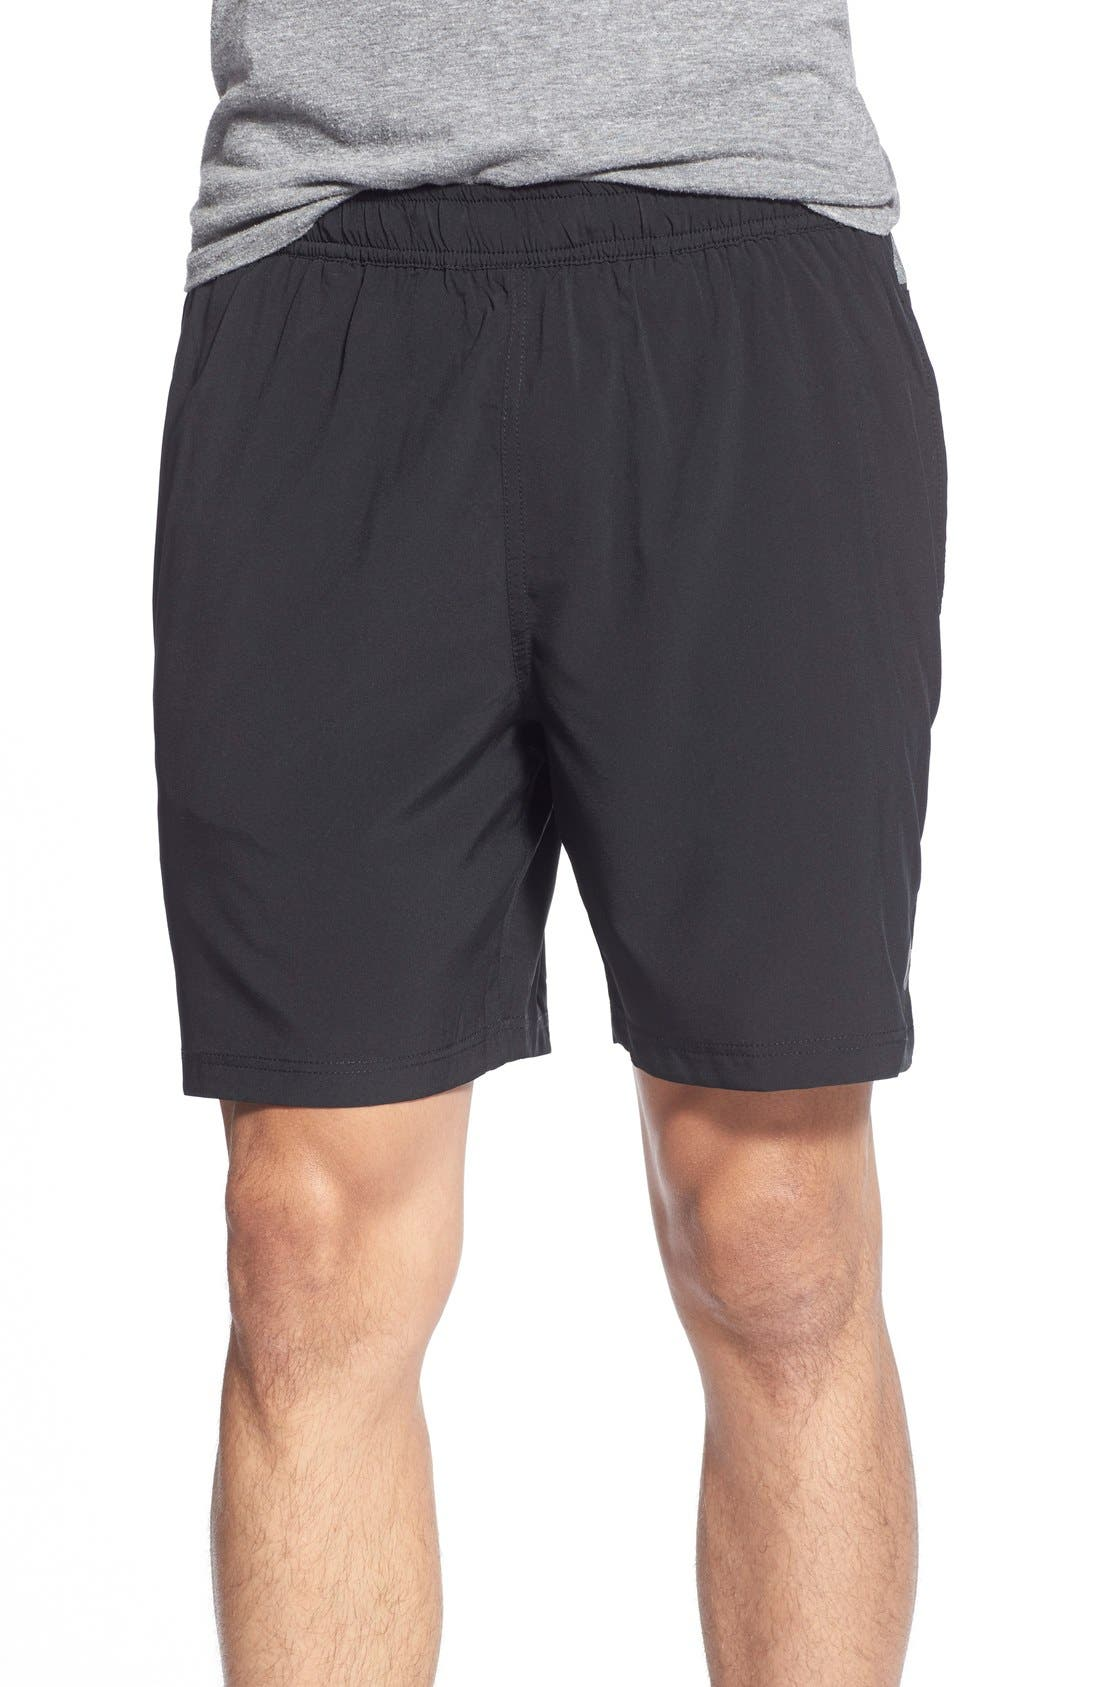 ATHLETIC RECON,                             '6.5' Stretch Woven Performance Shorts,                             Main thumbnail 1, color,                             001